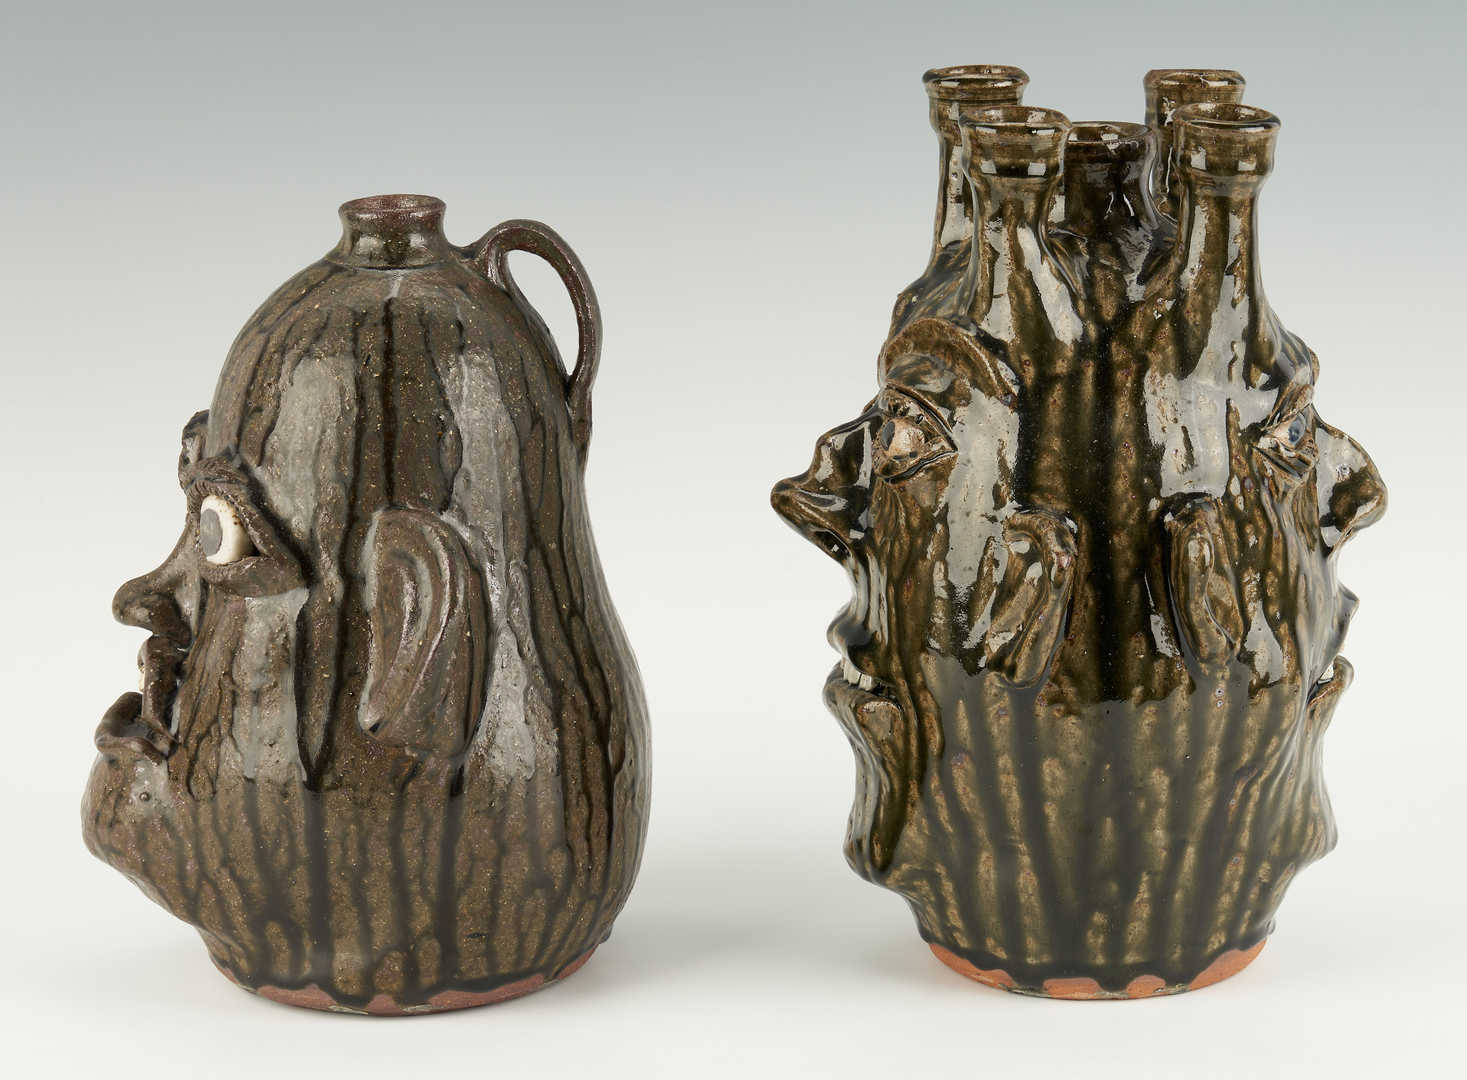 Lot 468: 2 GA Stoneware Pottery Face Jugs, incl. C. & B. Meaders, M. Hewell